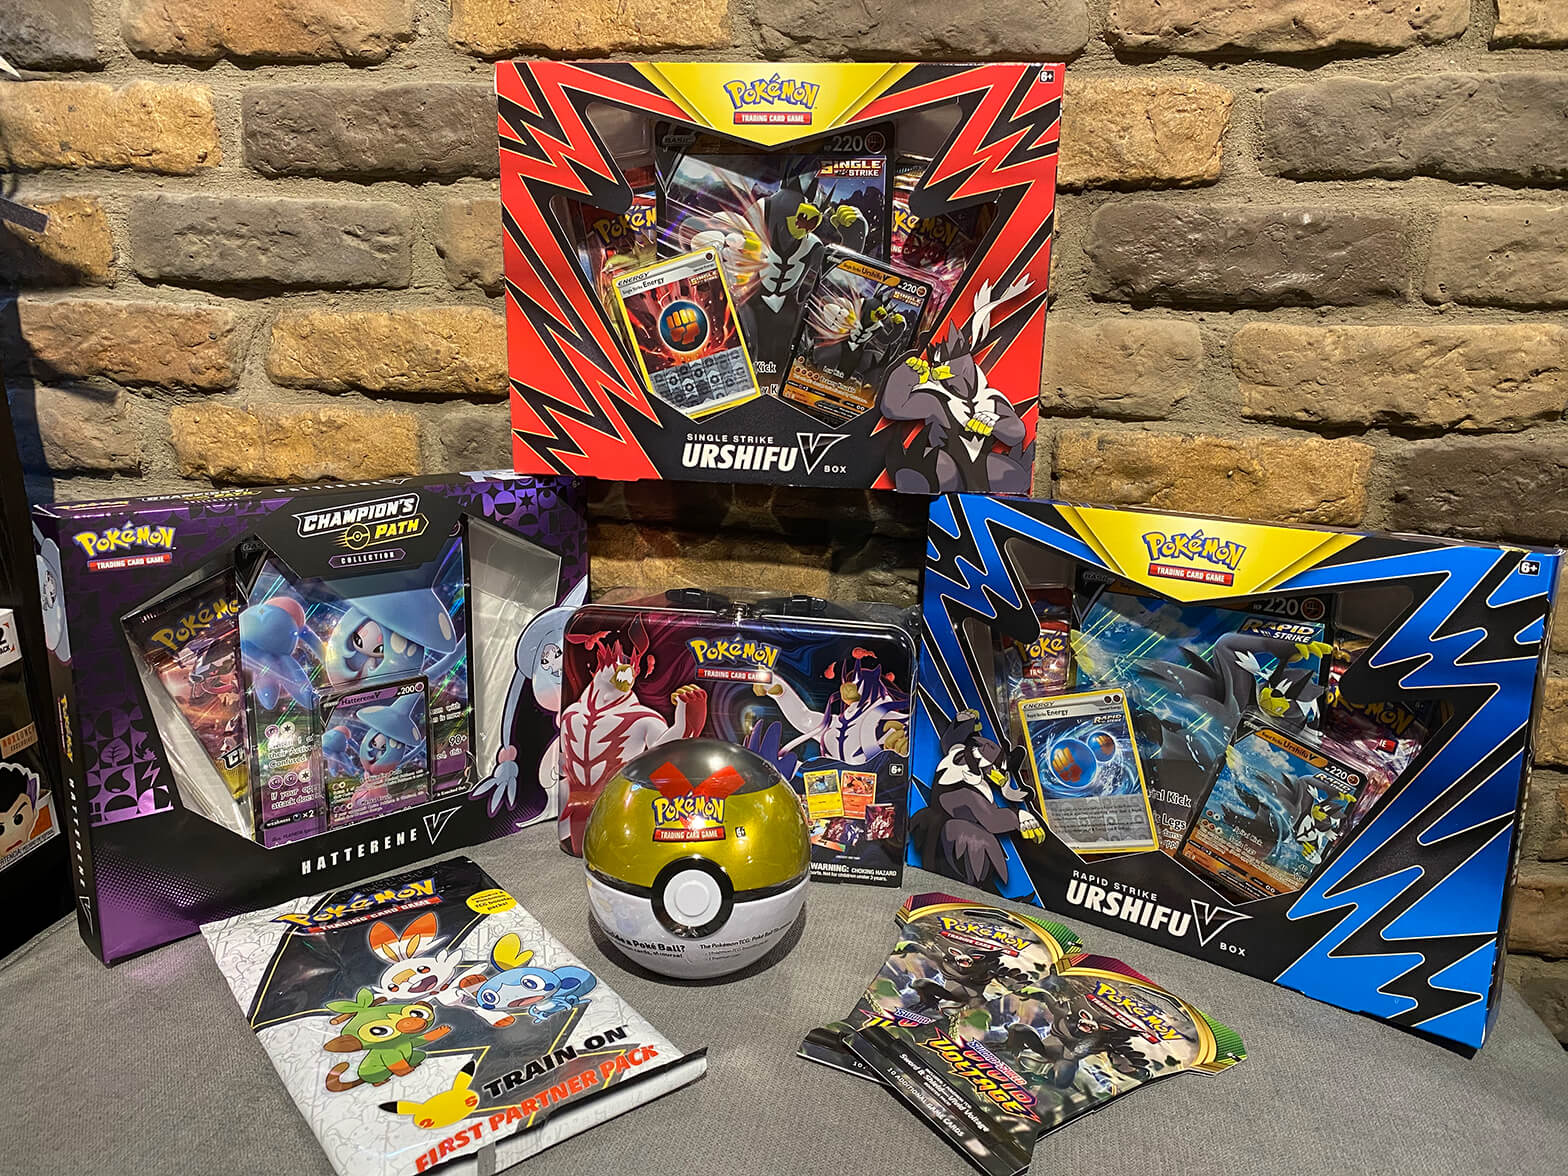 Pokemon cards and collectibles